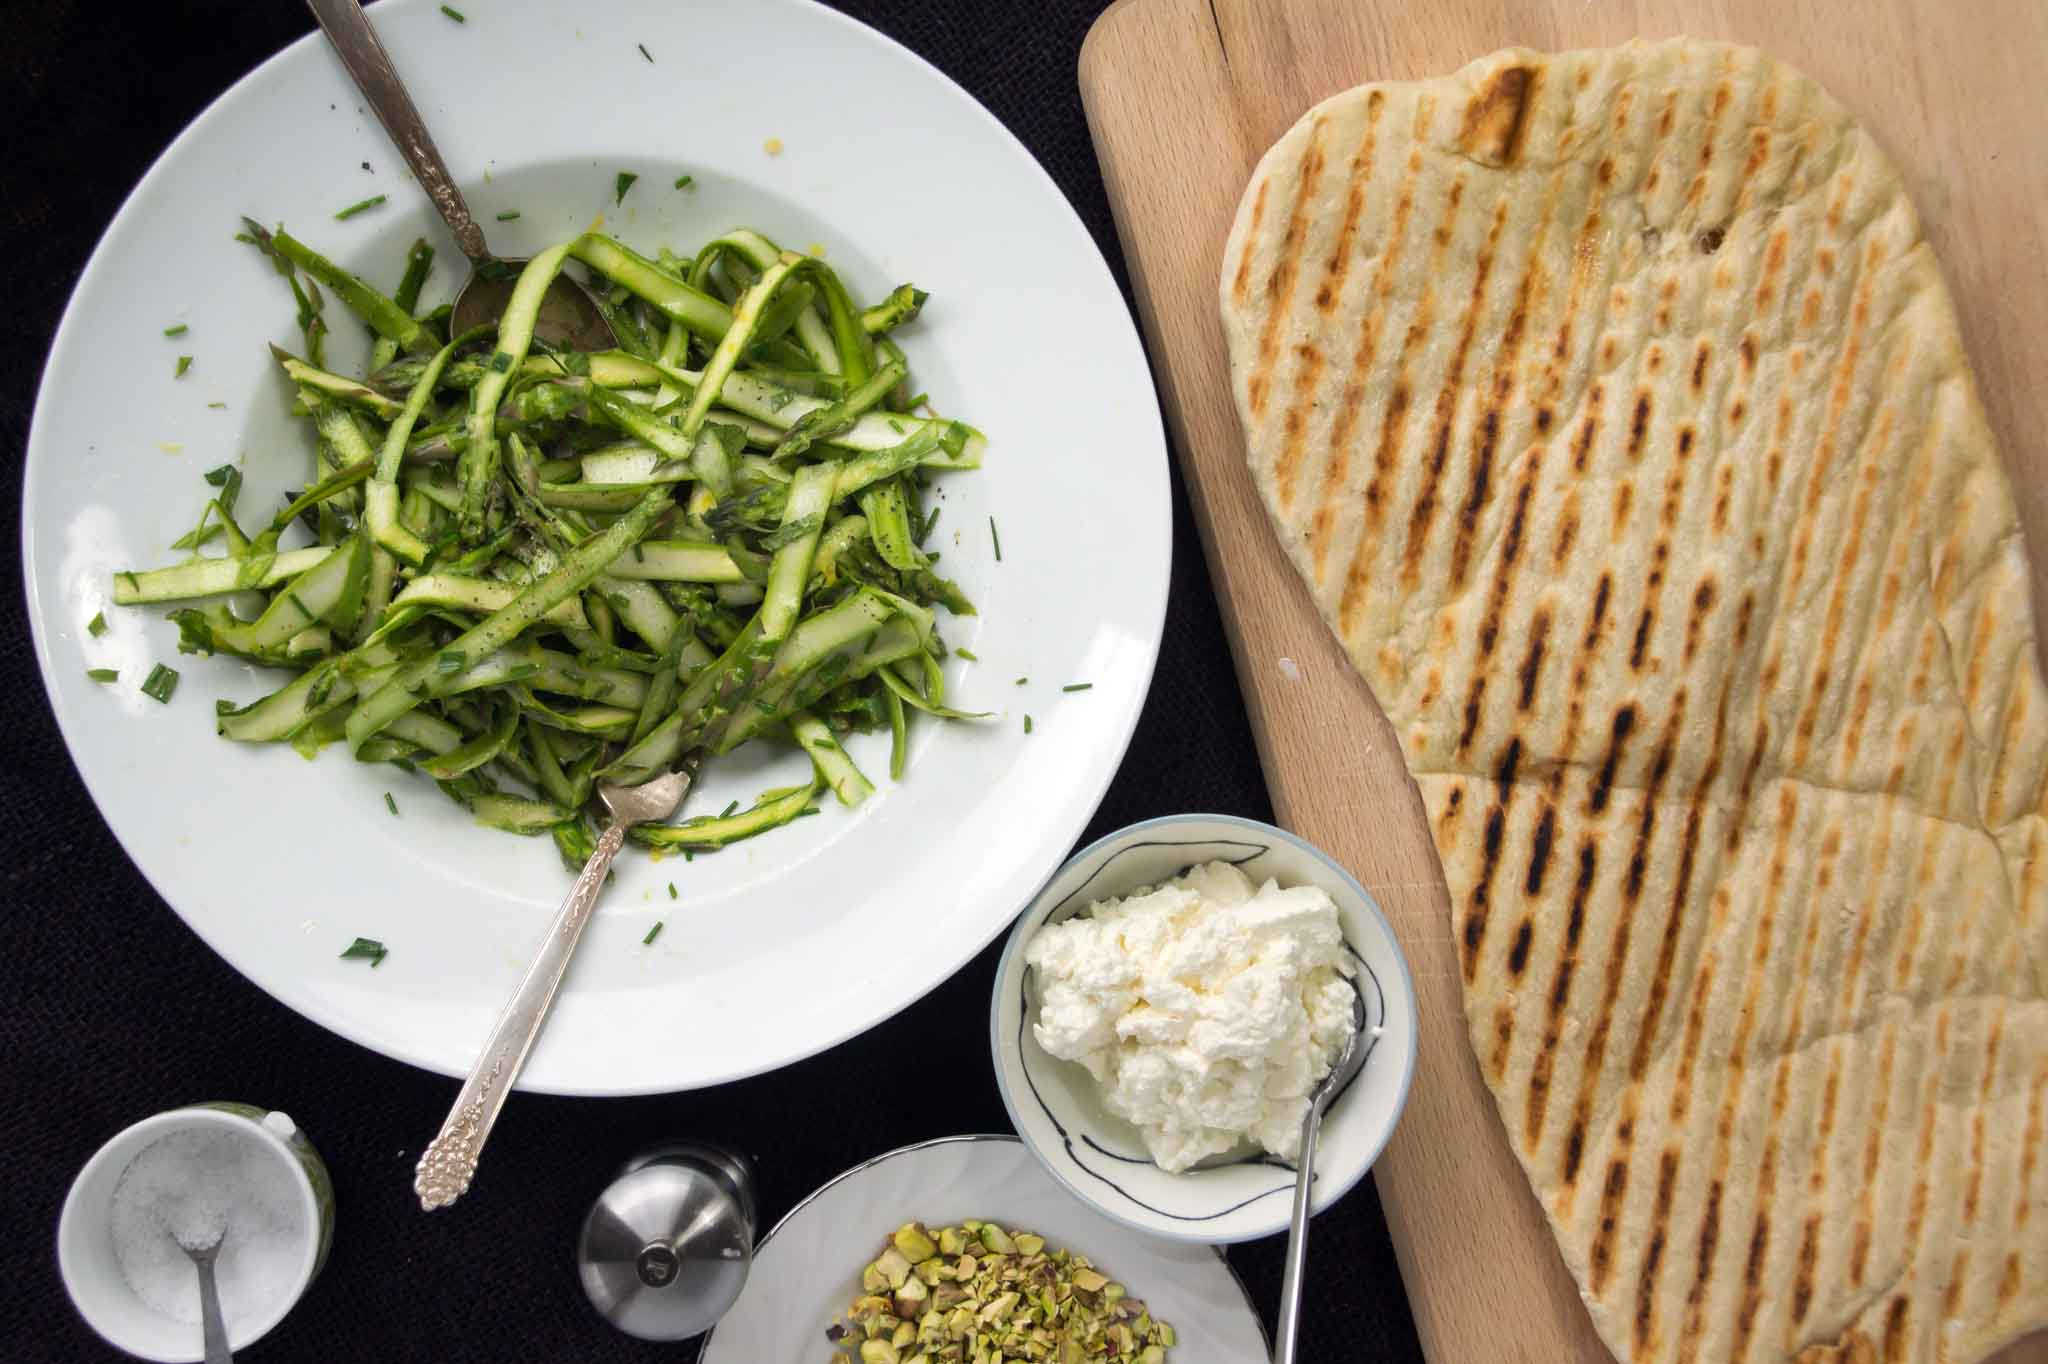 Grilled Flatbread with Asparagus & Herb Salad